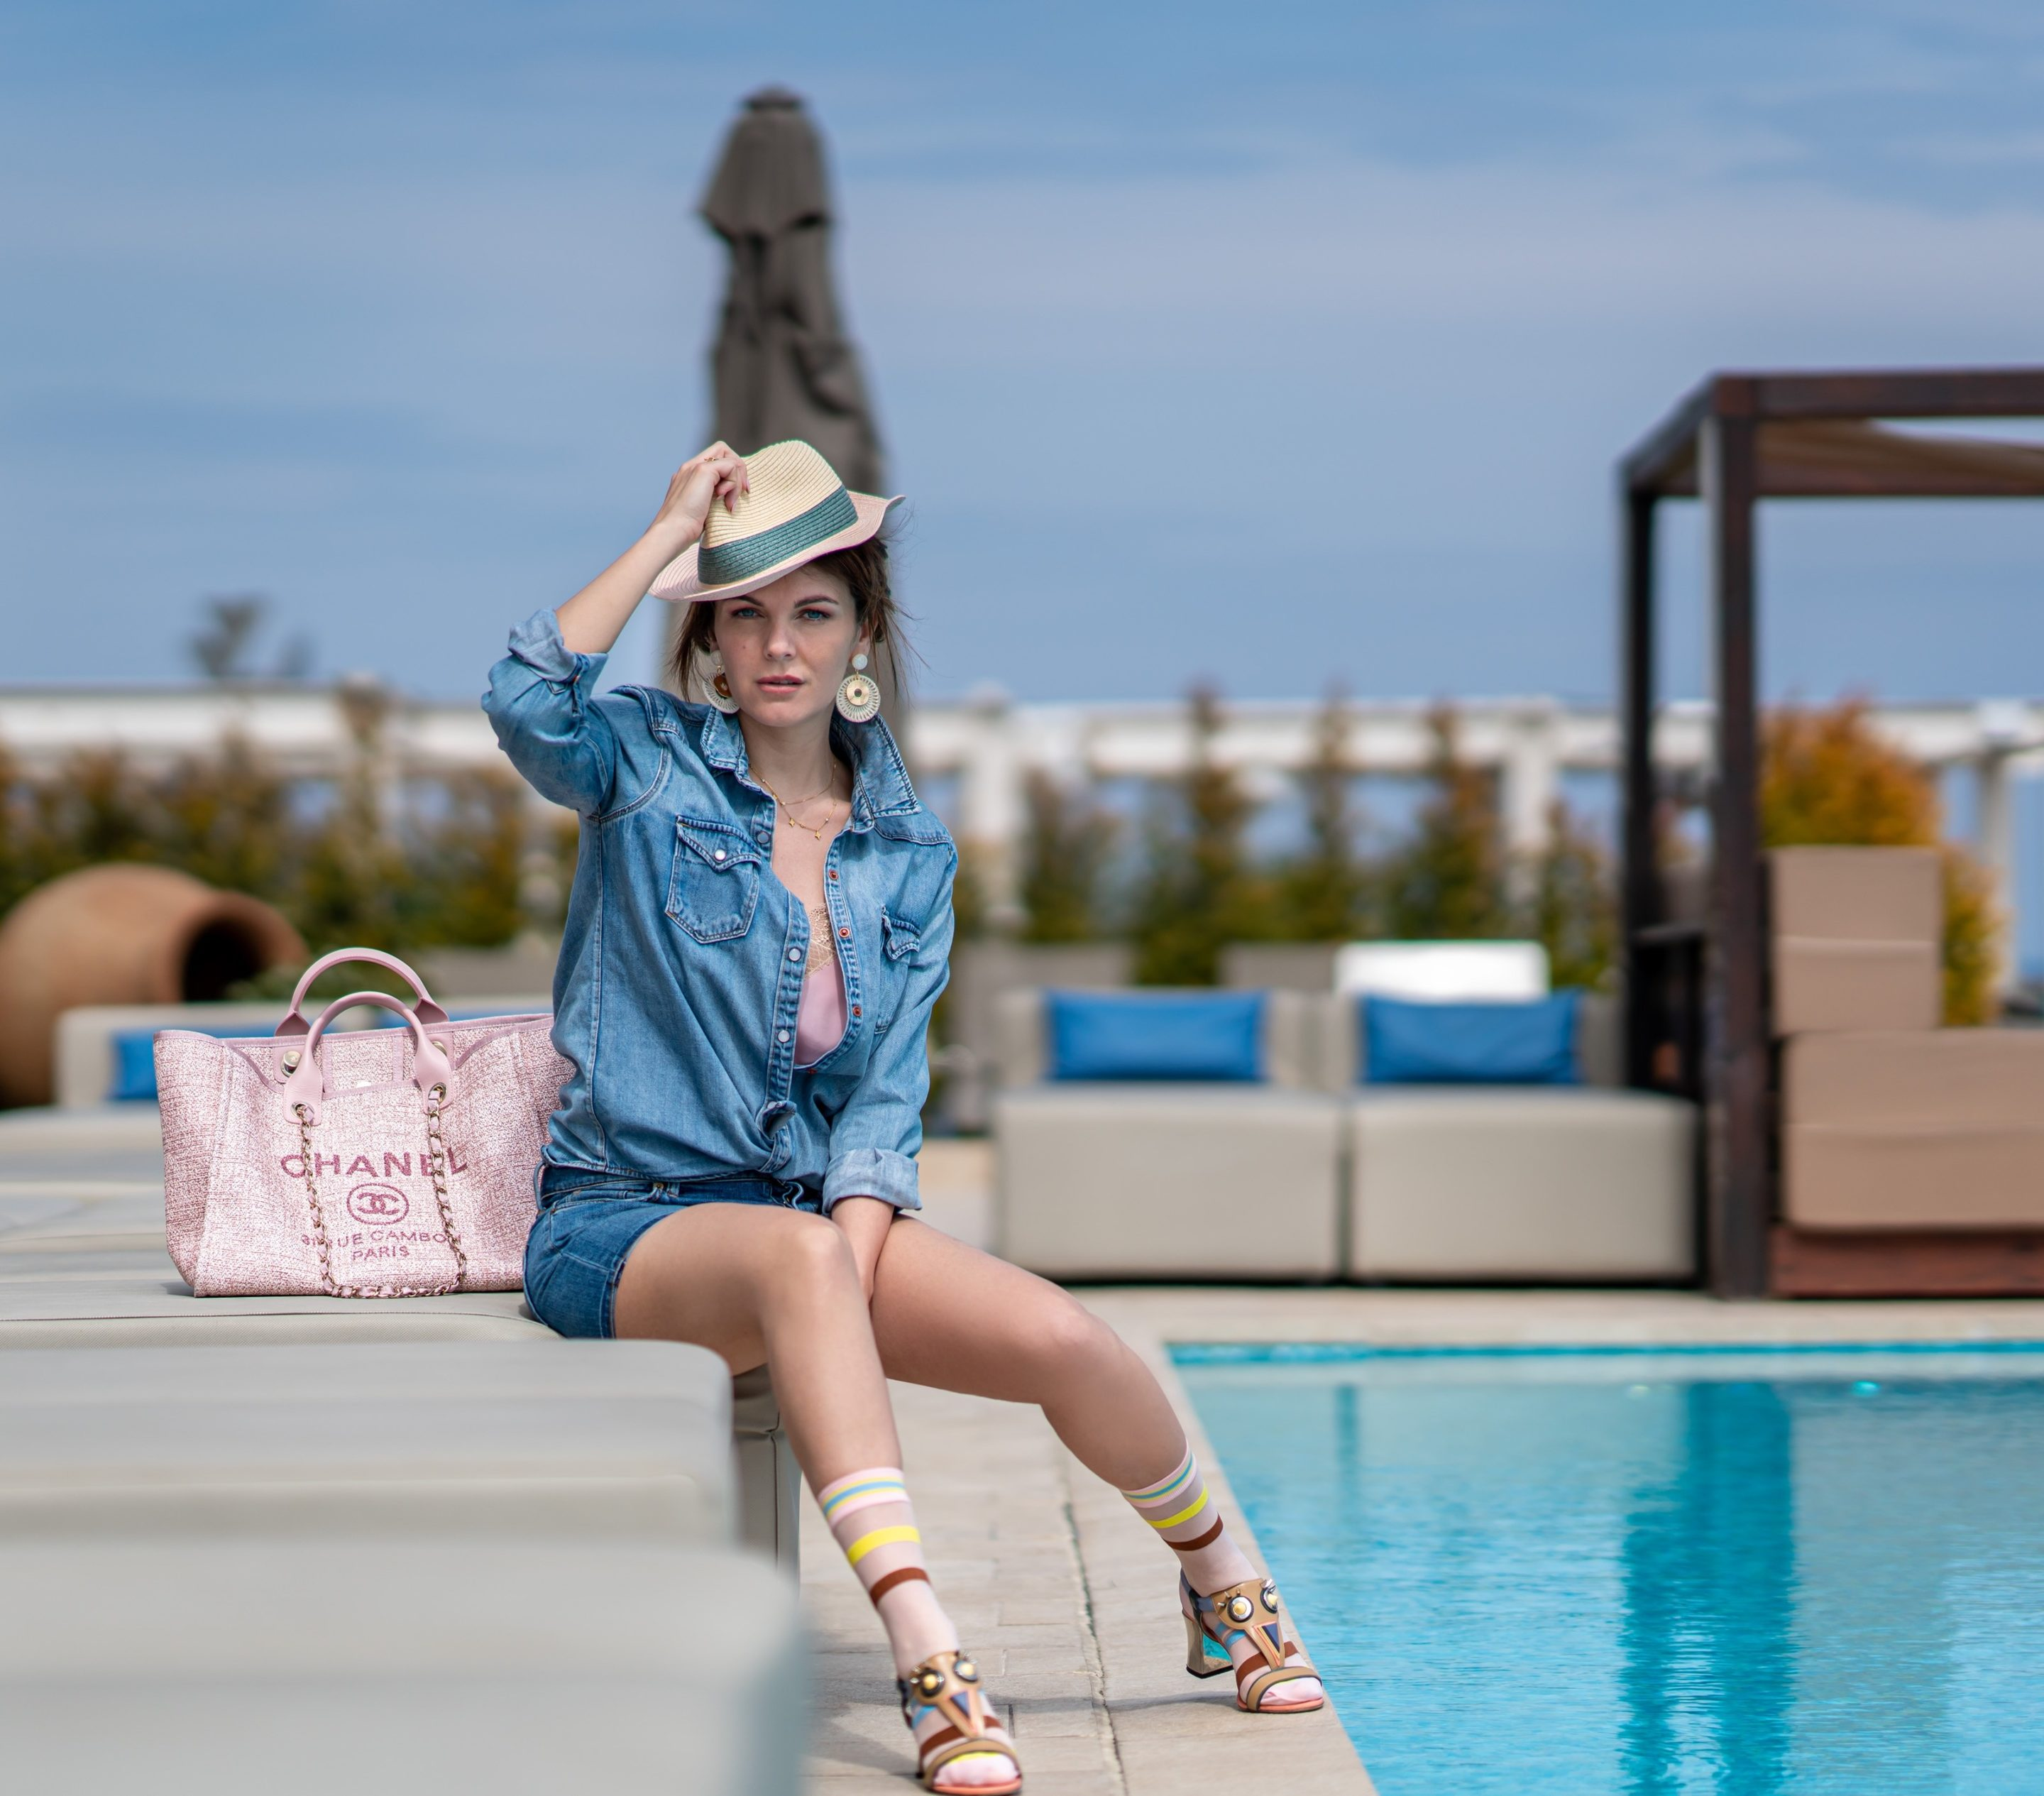 Denim outfit fendi sandals and chanel bag by the pool